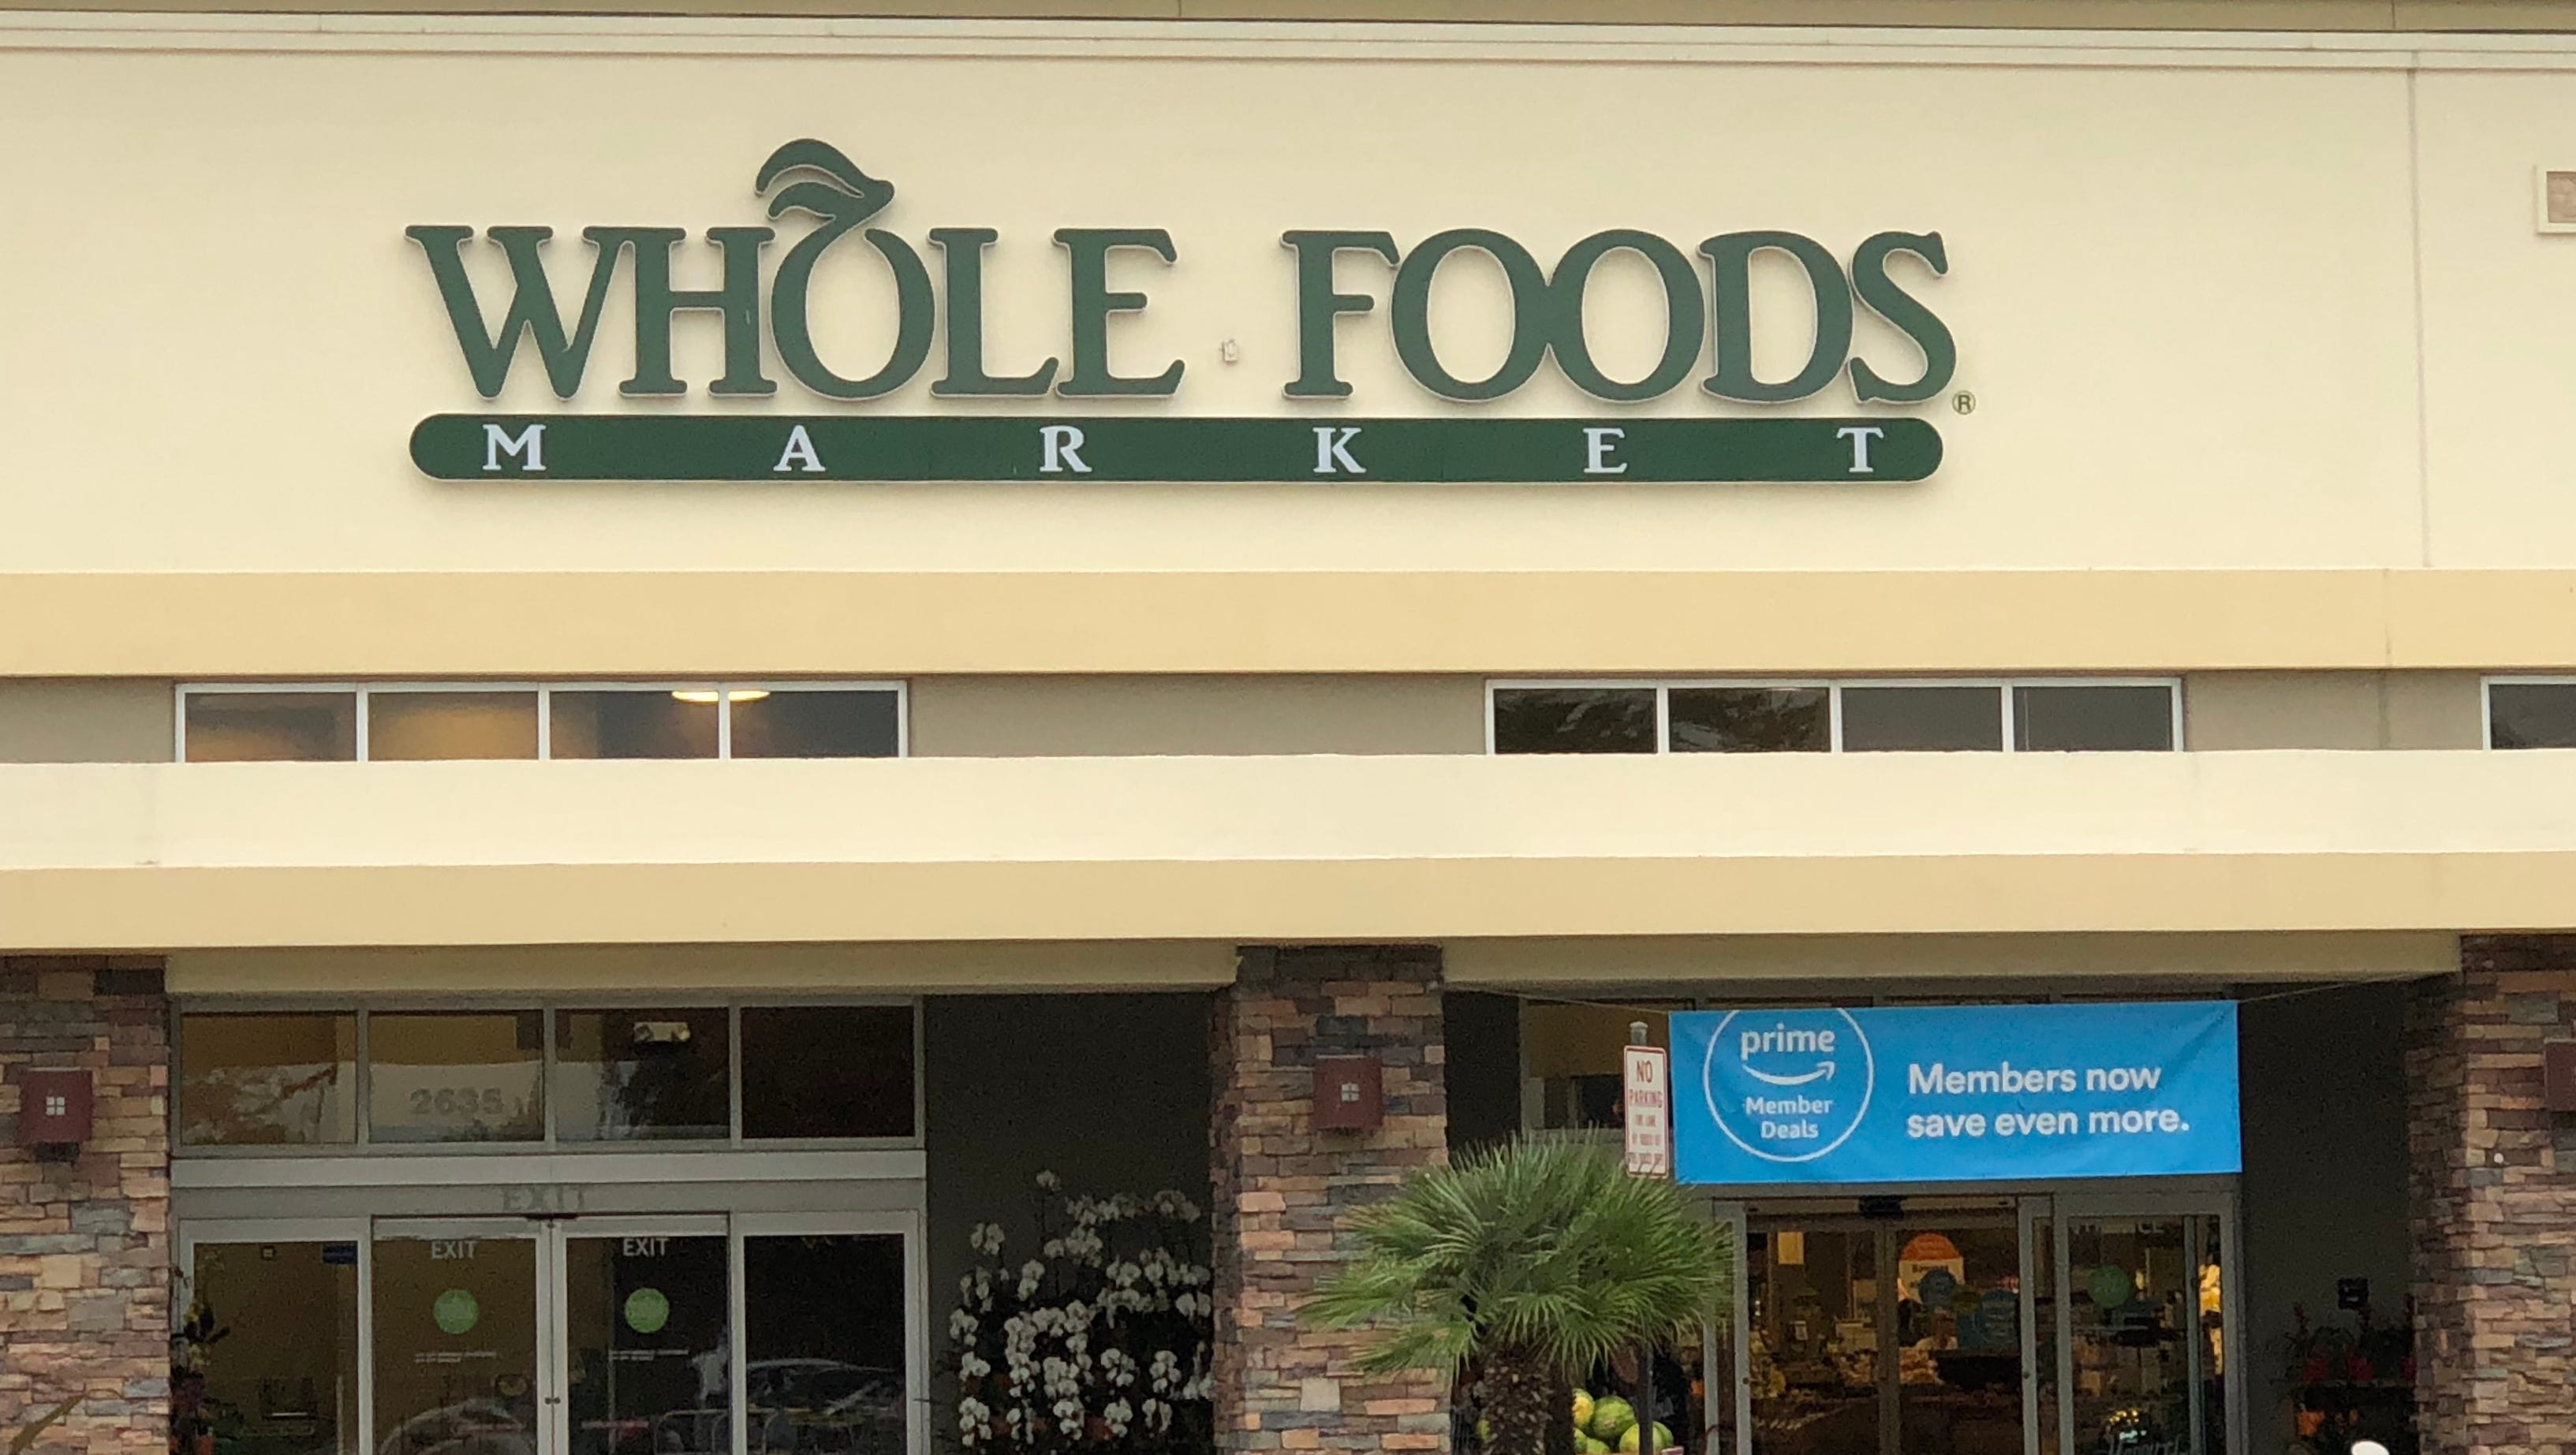 usatoday.com - Kelly Tyko, USA TODAY - Amazon Prime Day: All Whole Foods Market deals in one place